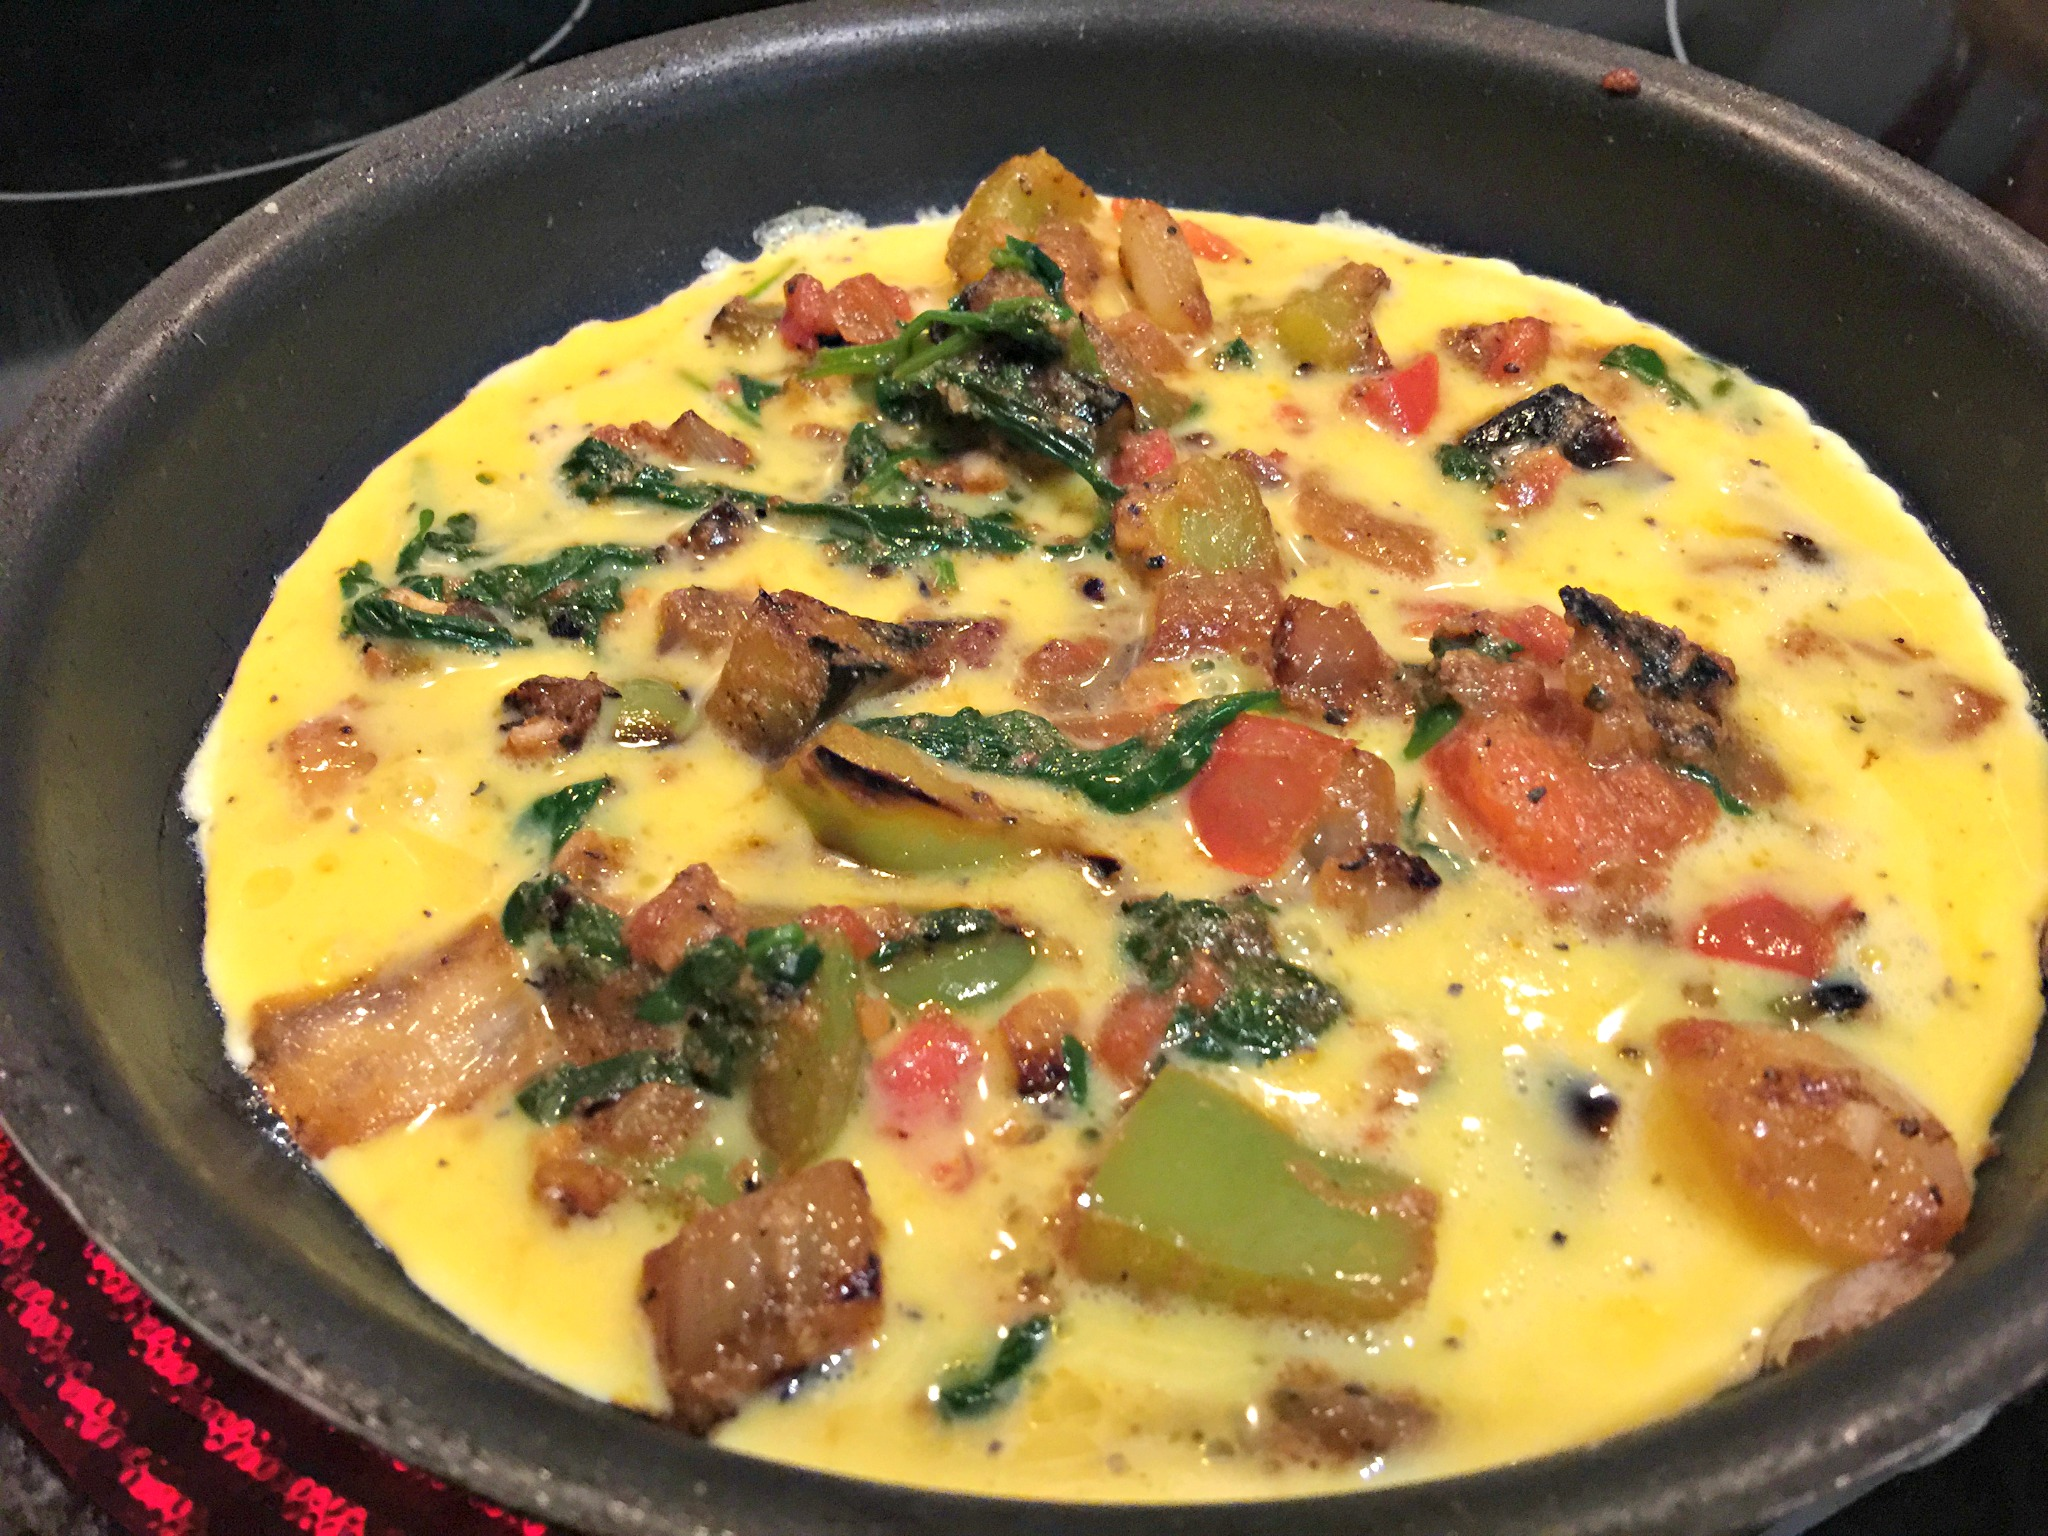 Vegetable Omelet: Sautéed Onions, Tomatoes, Spinach, Bell Peppers with Pepperjack Cheese.